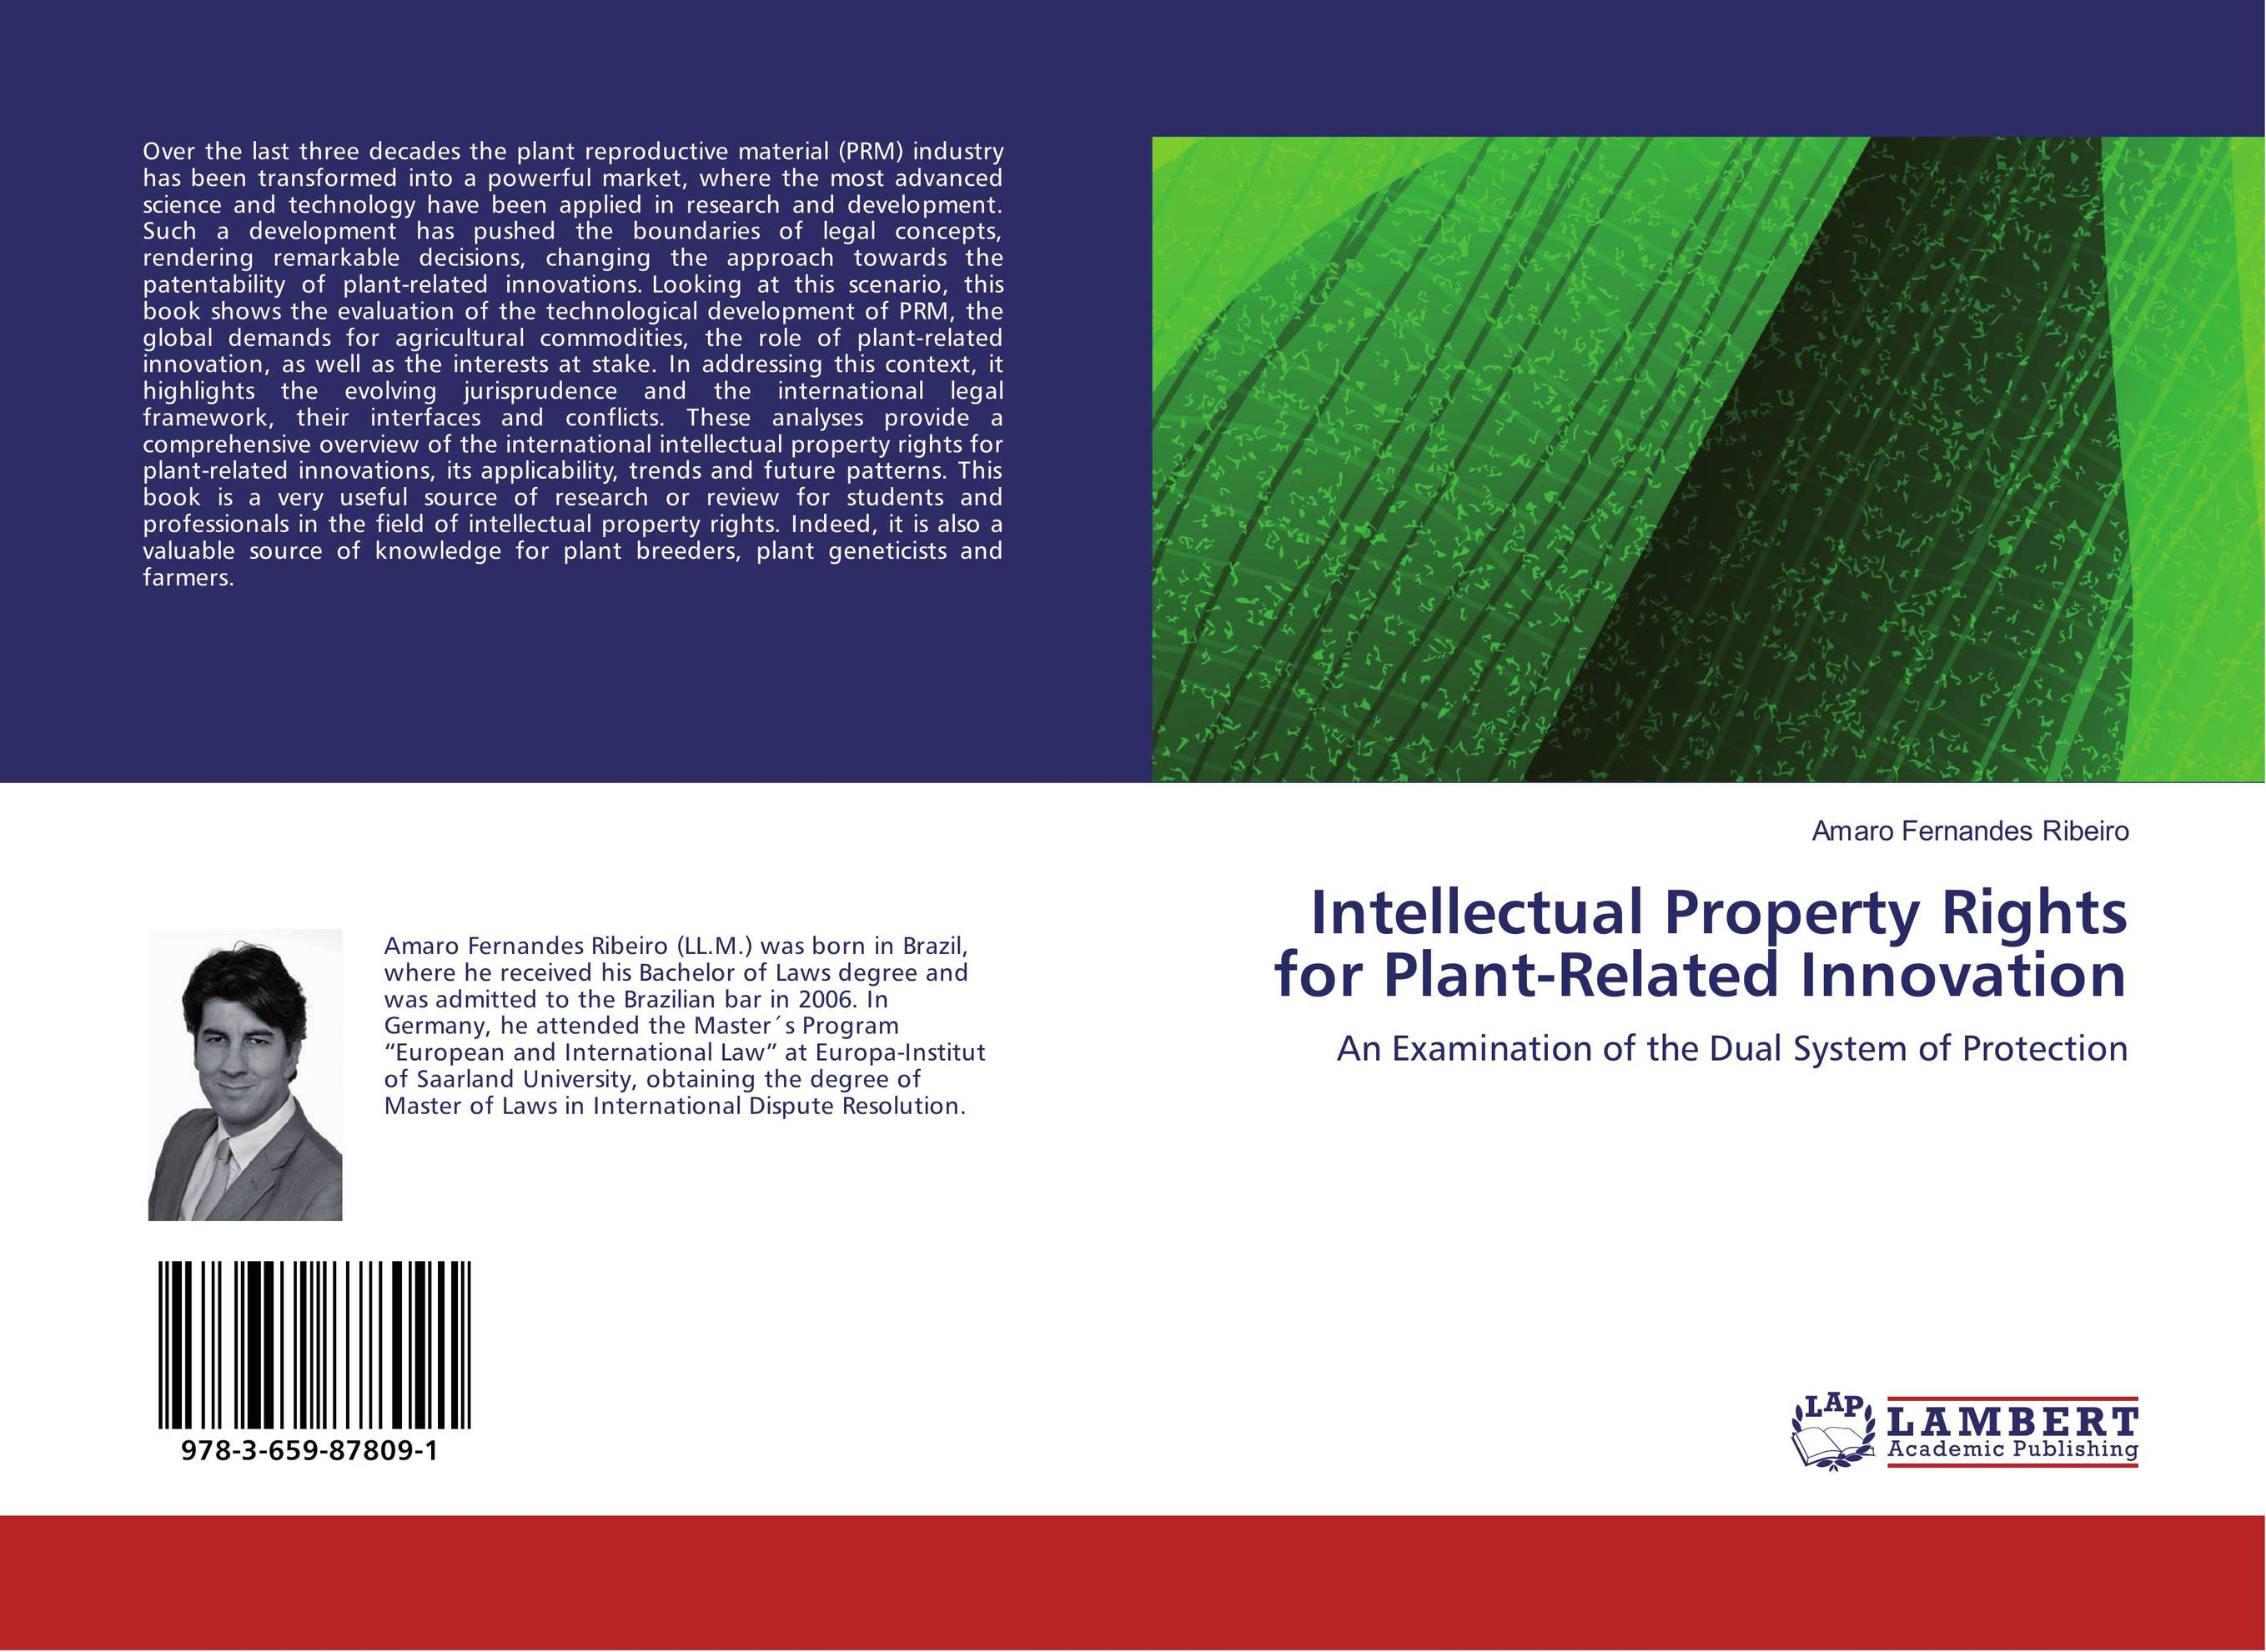 Intellectual Property Rights for Plant-Related Innovation development of a computational interface for small hydropower plant